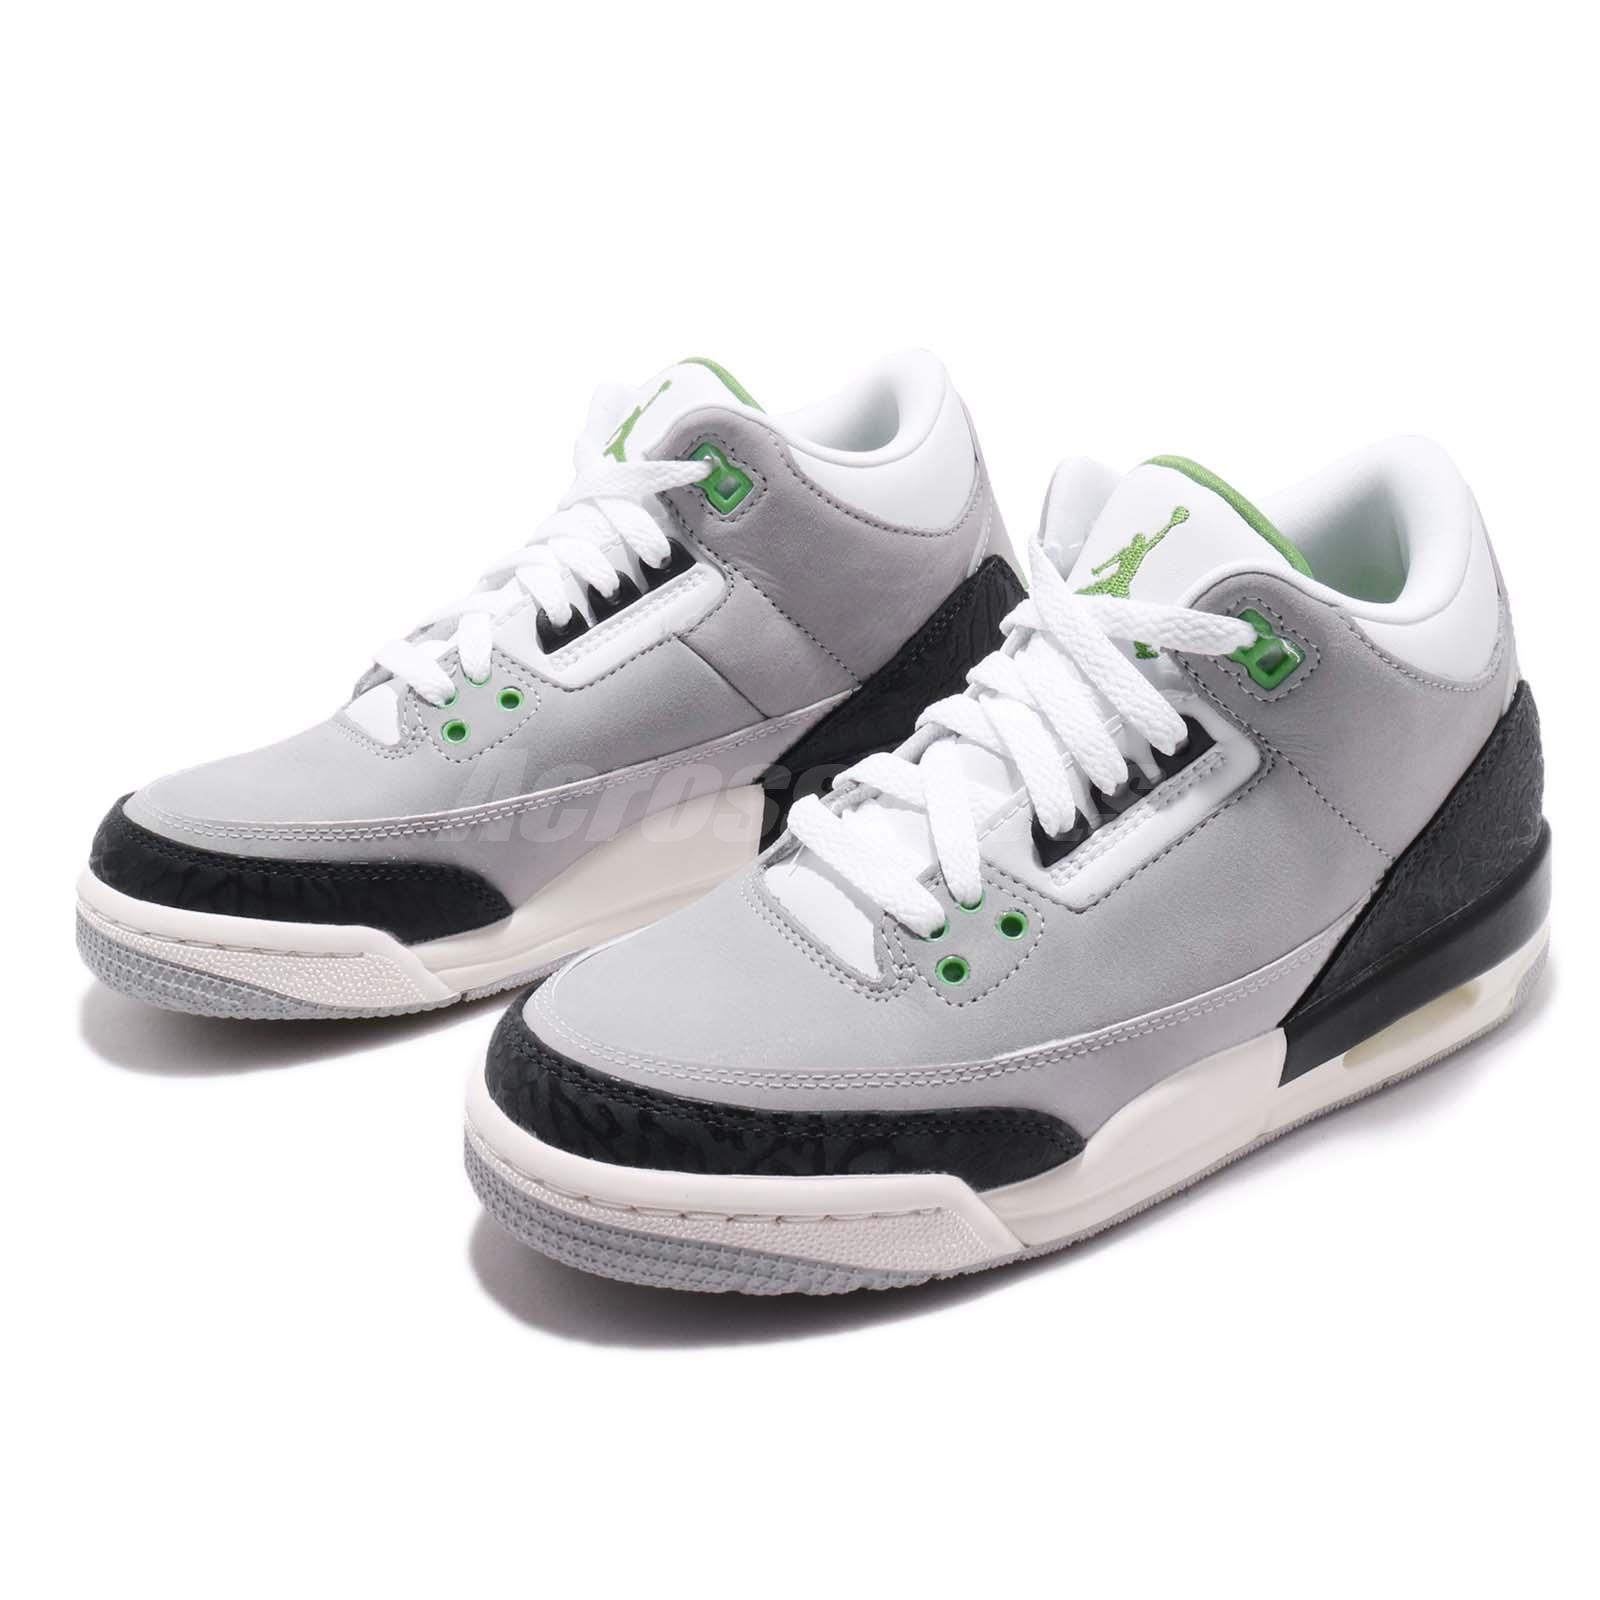 new style d7f7c 921f8 Details about Nike Air Jordan 3 Retro BG Chlorophyll Tinker Green Kid Women  Shoes 398614-006